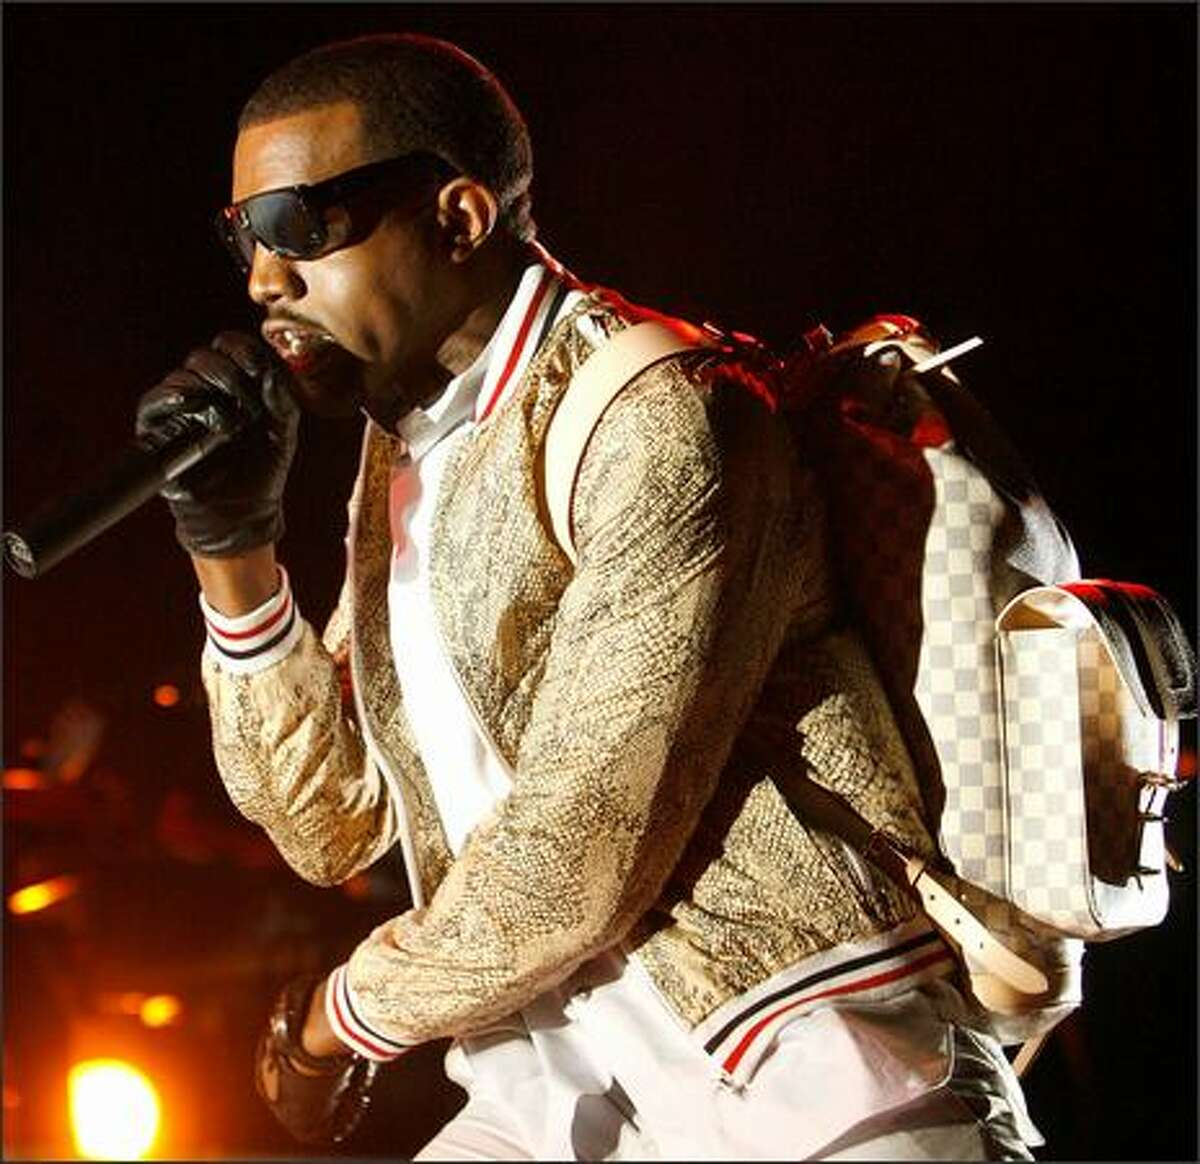 Kanye West performs at the Louisiana Superdome during the 2008 Essence Music Festival in New Orleans, Louisiana.